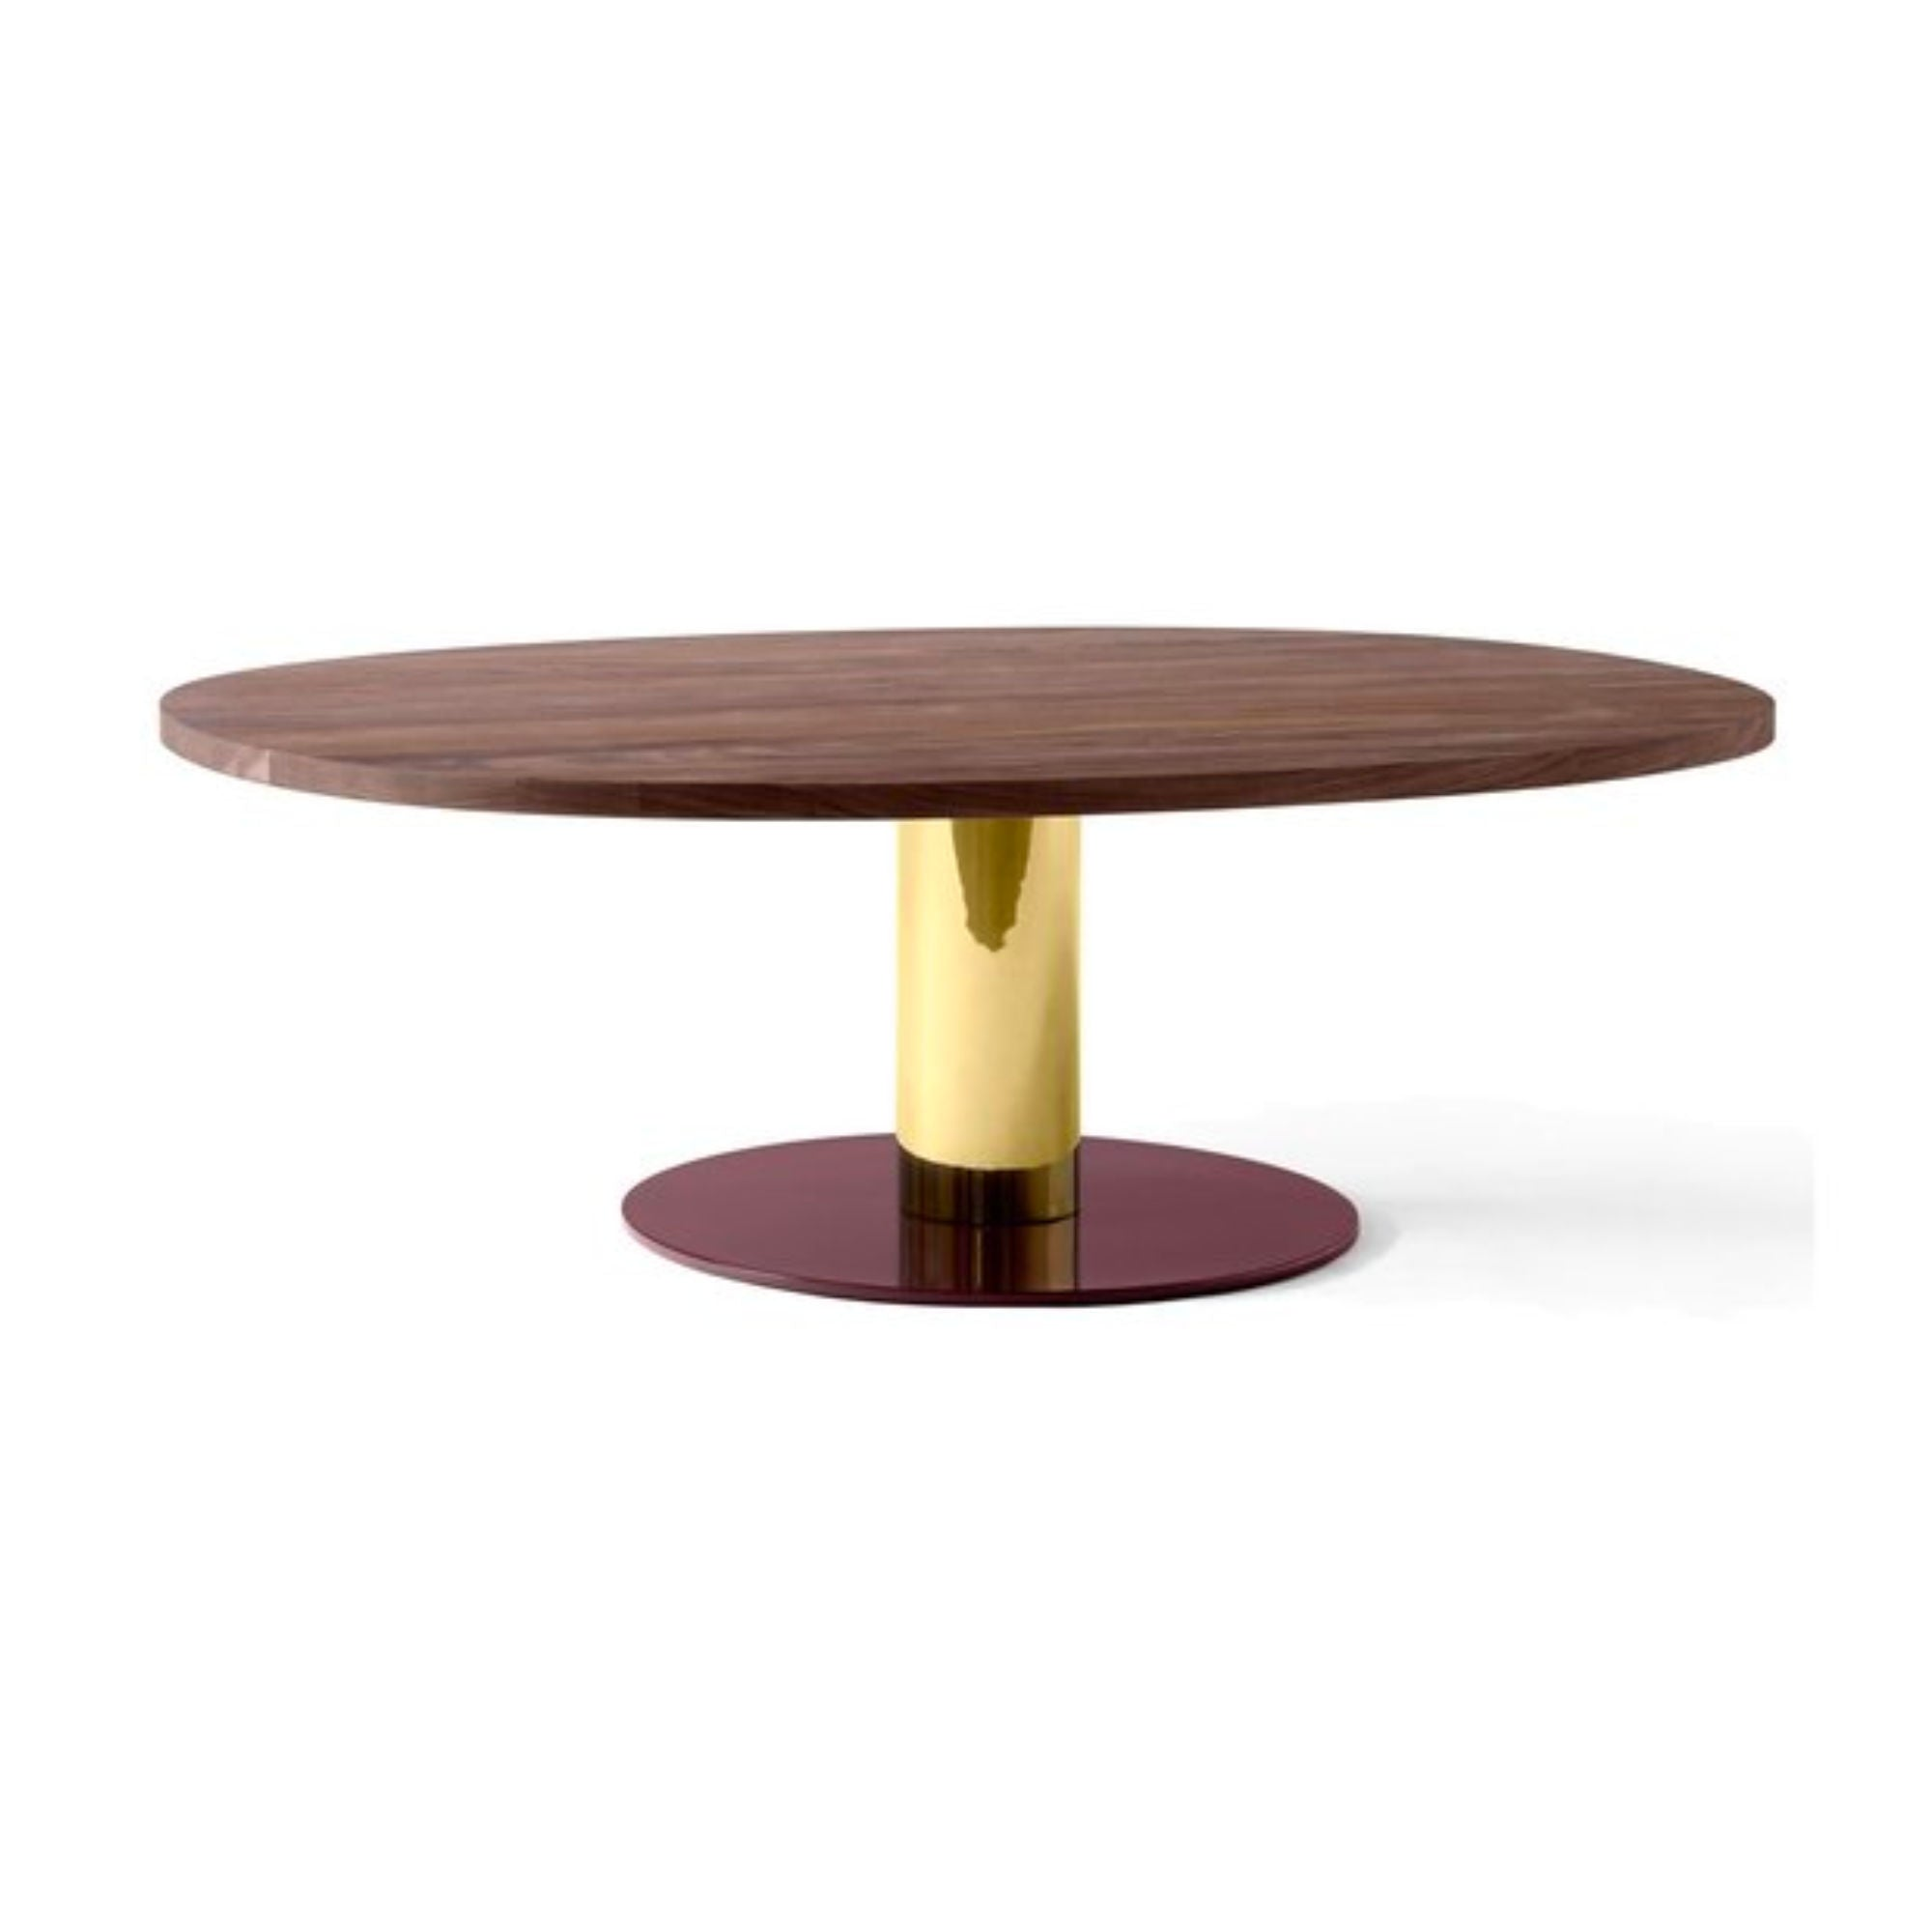 &Tradition JH21 Mezcla Coffee Table w120d90 , Walnut/Brass/Burgundy